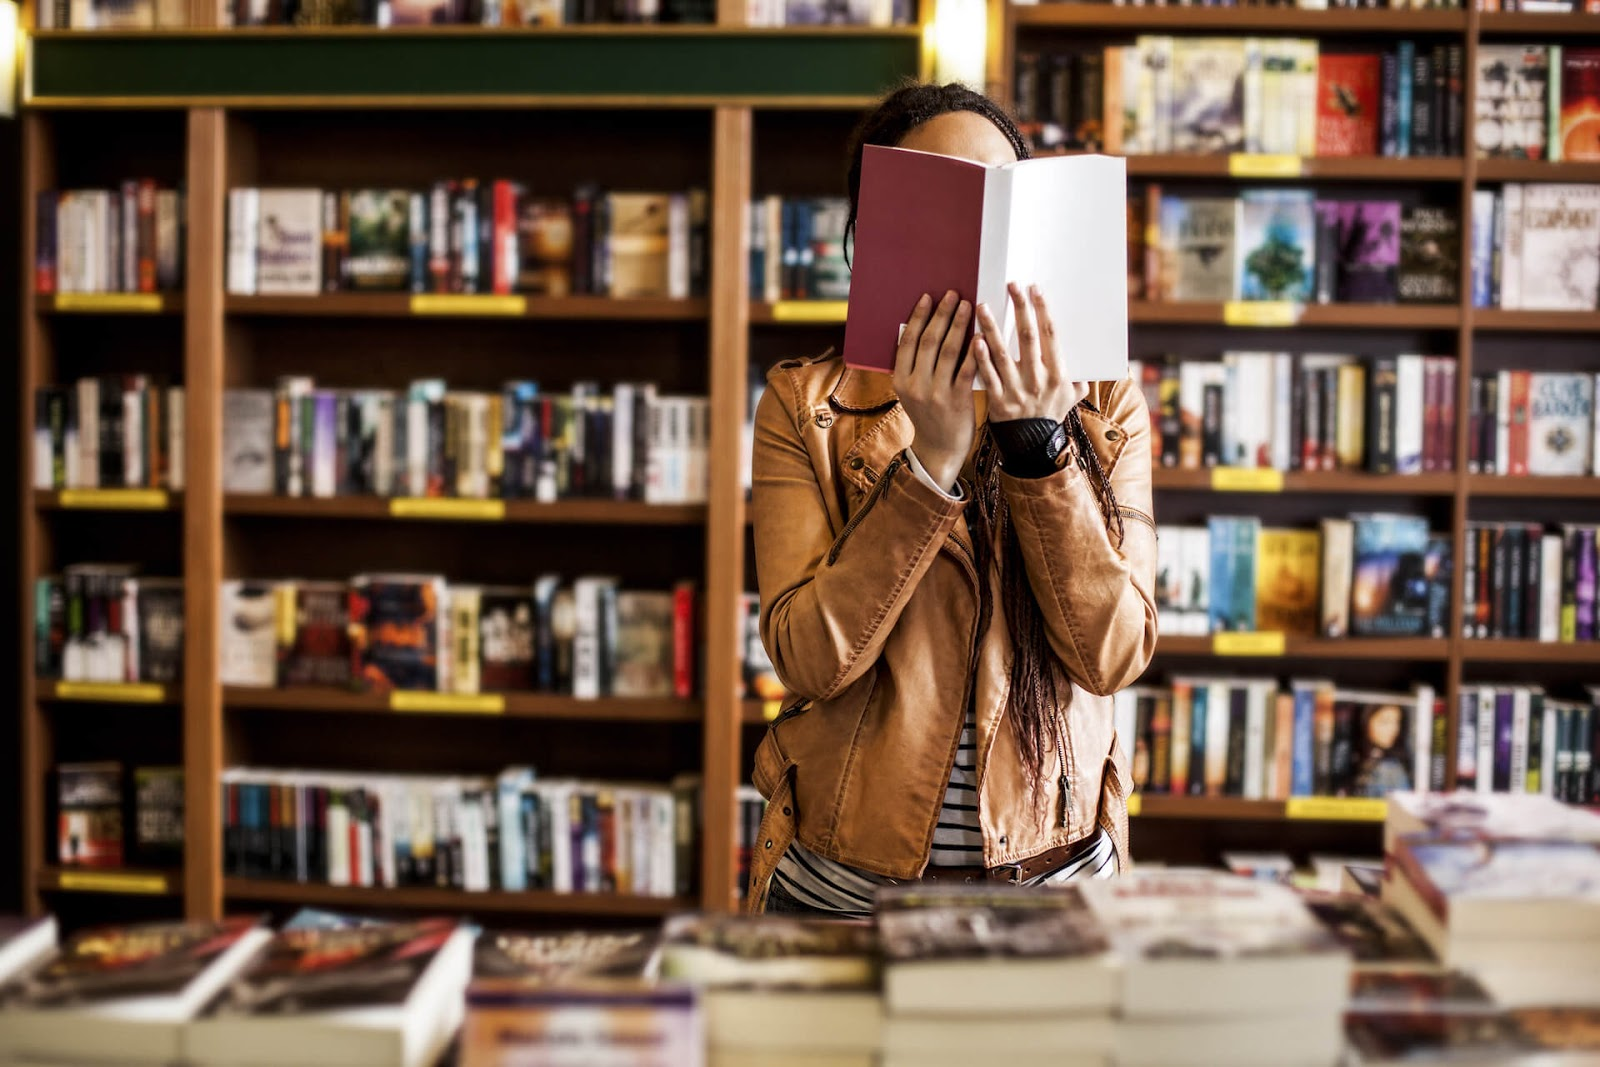 Woman holding a book in front of her face in a bookstore